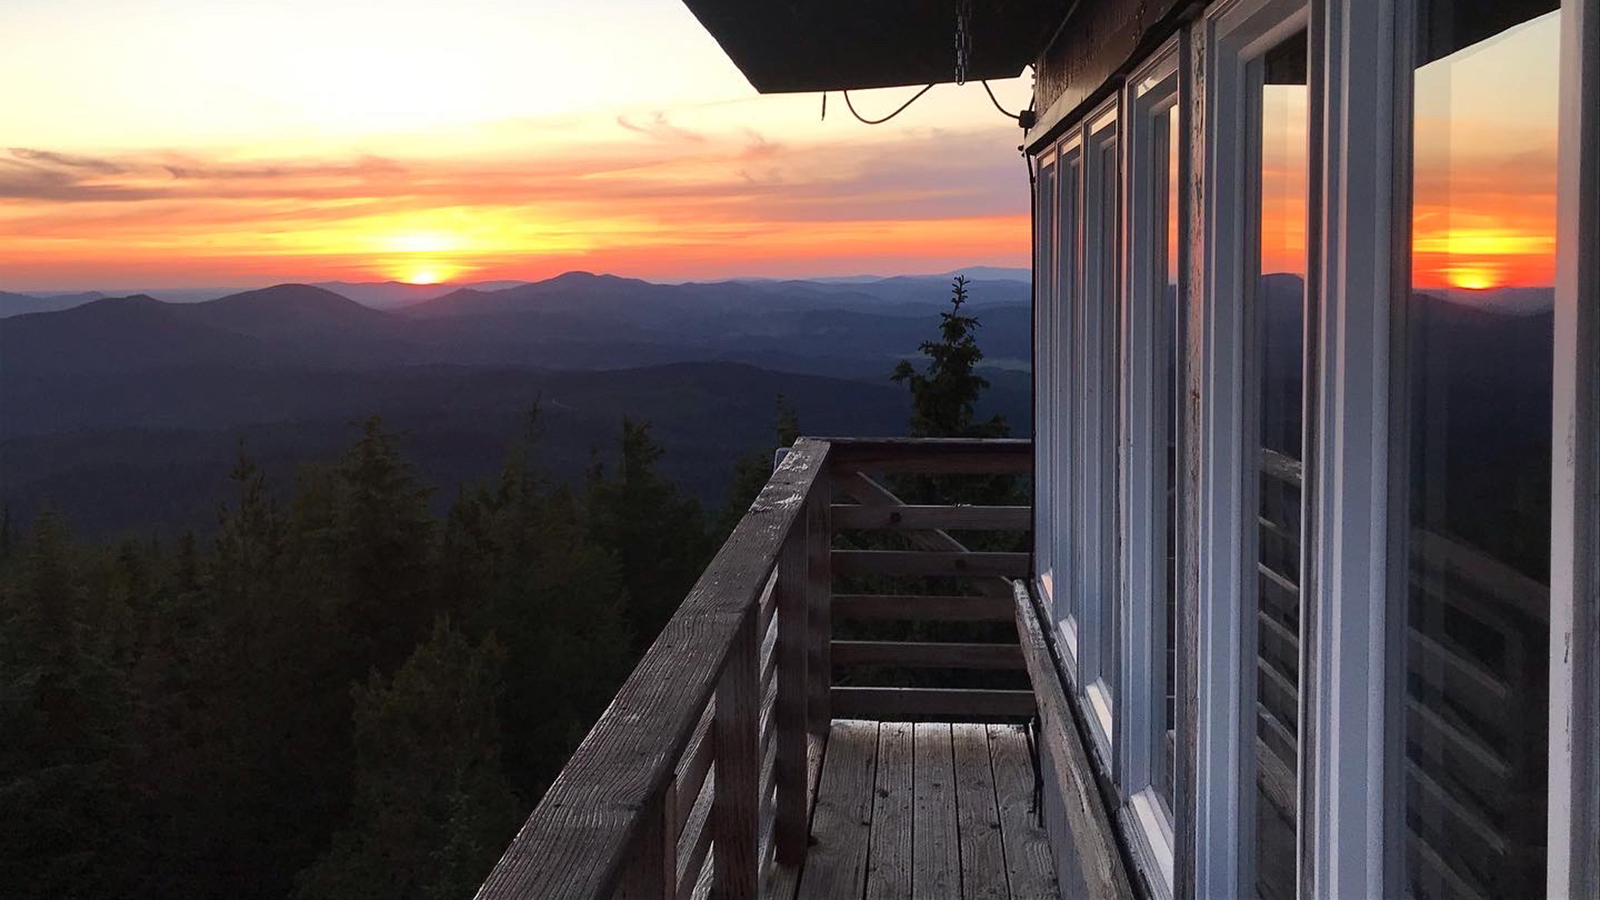 How To Rent Fire Lookout Tower A 40 Bargain And Covid 19 Escape Cnn Travel